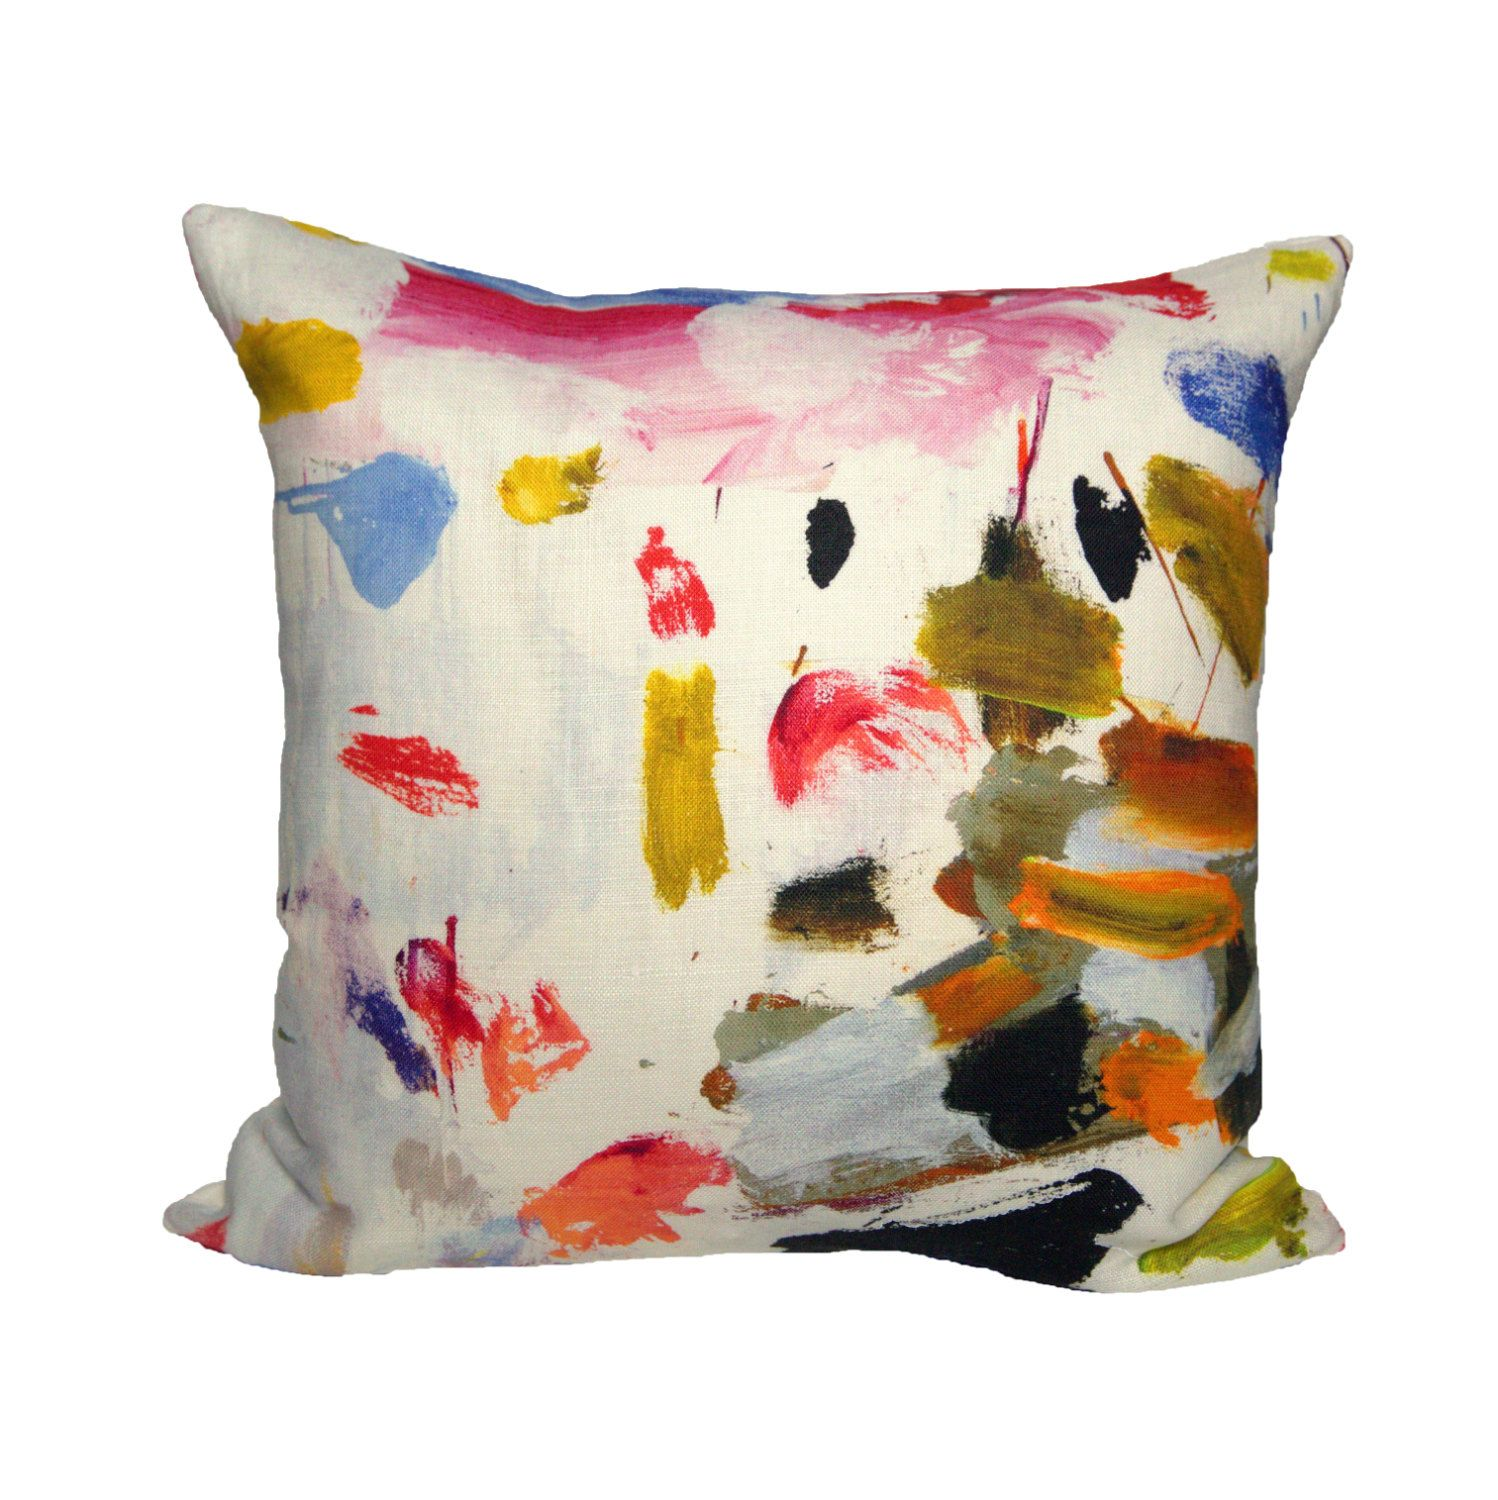 """""""Lately, I've been eyeing these playful throw pillows in @pierrefrey's new """"Arty"""" linen. The vibrant brushstroke pattern was designed by French artist Marie-cécile Aptel"""" - @katiearmour, read more on The NeoTrad"""